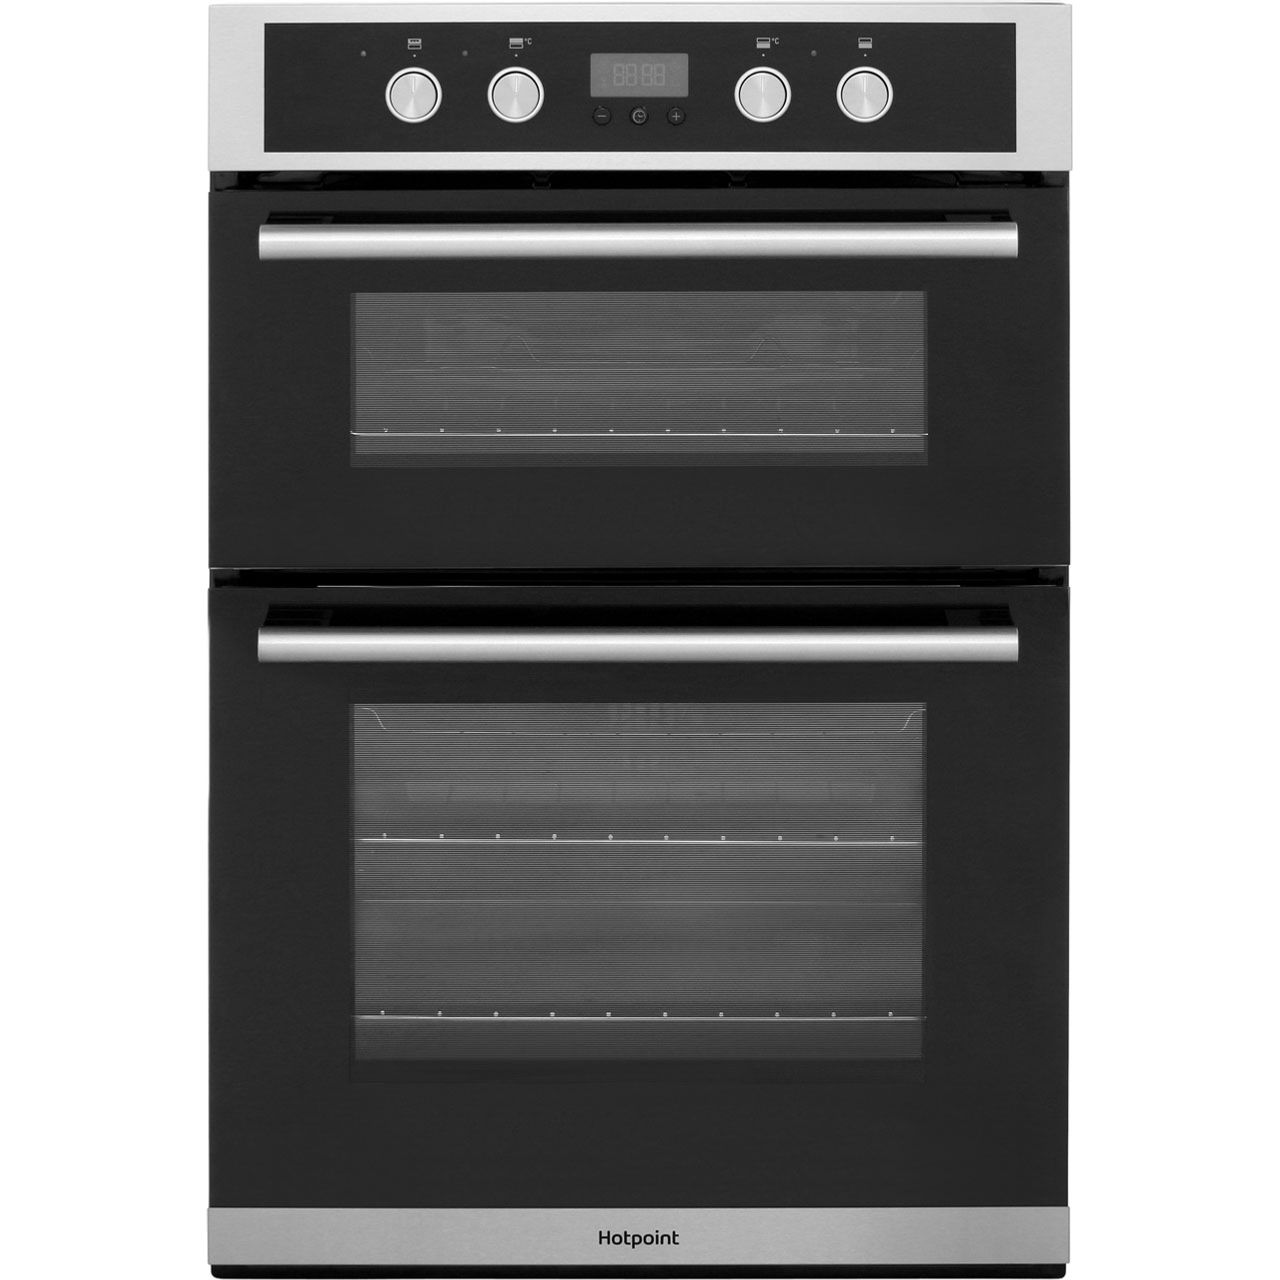 Hotpoint double oven electric